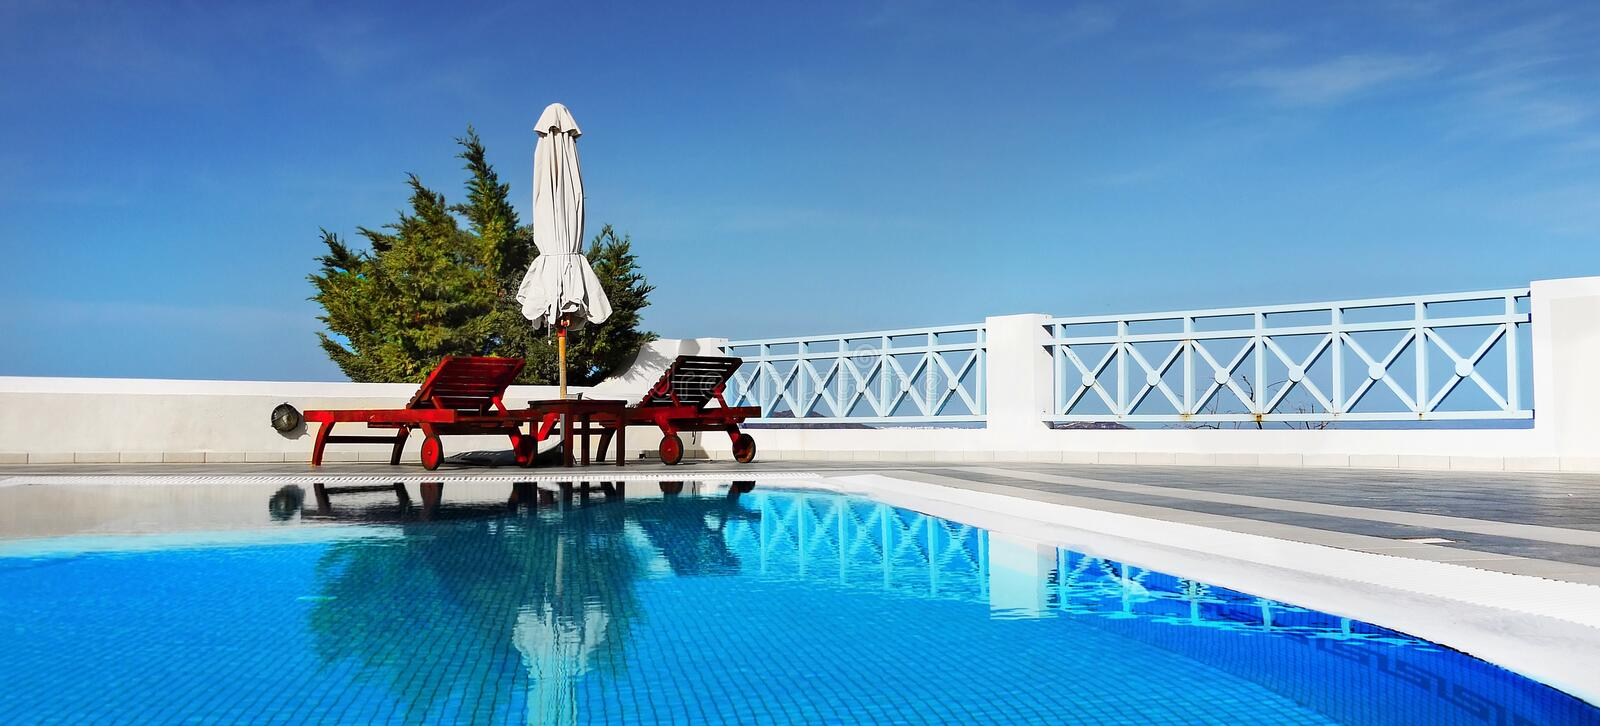 Header Swimming Pool Spa Relaxation royalty free stock image